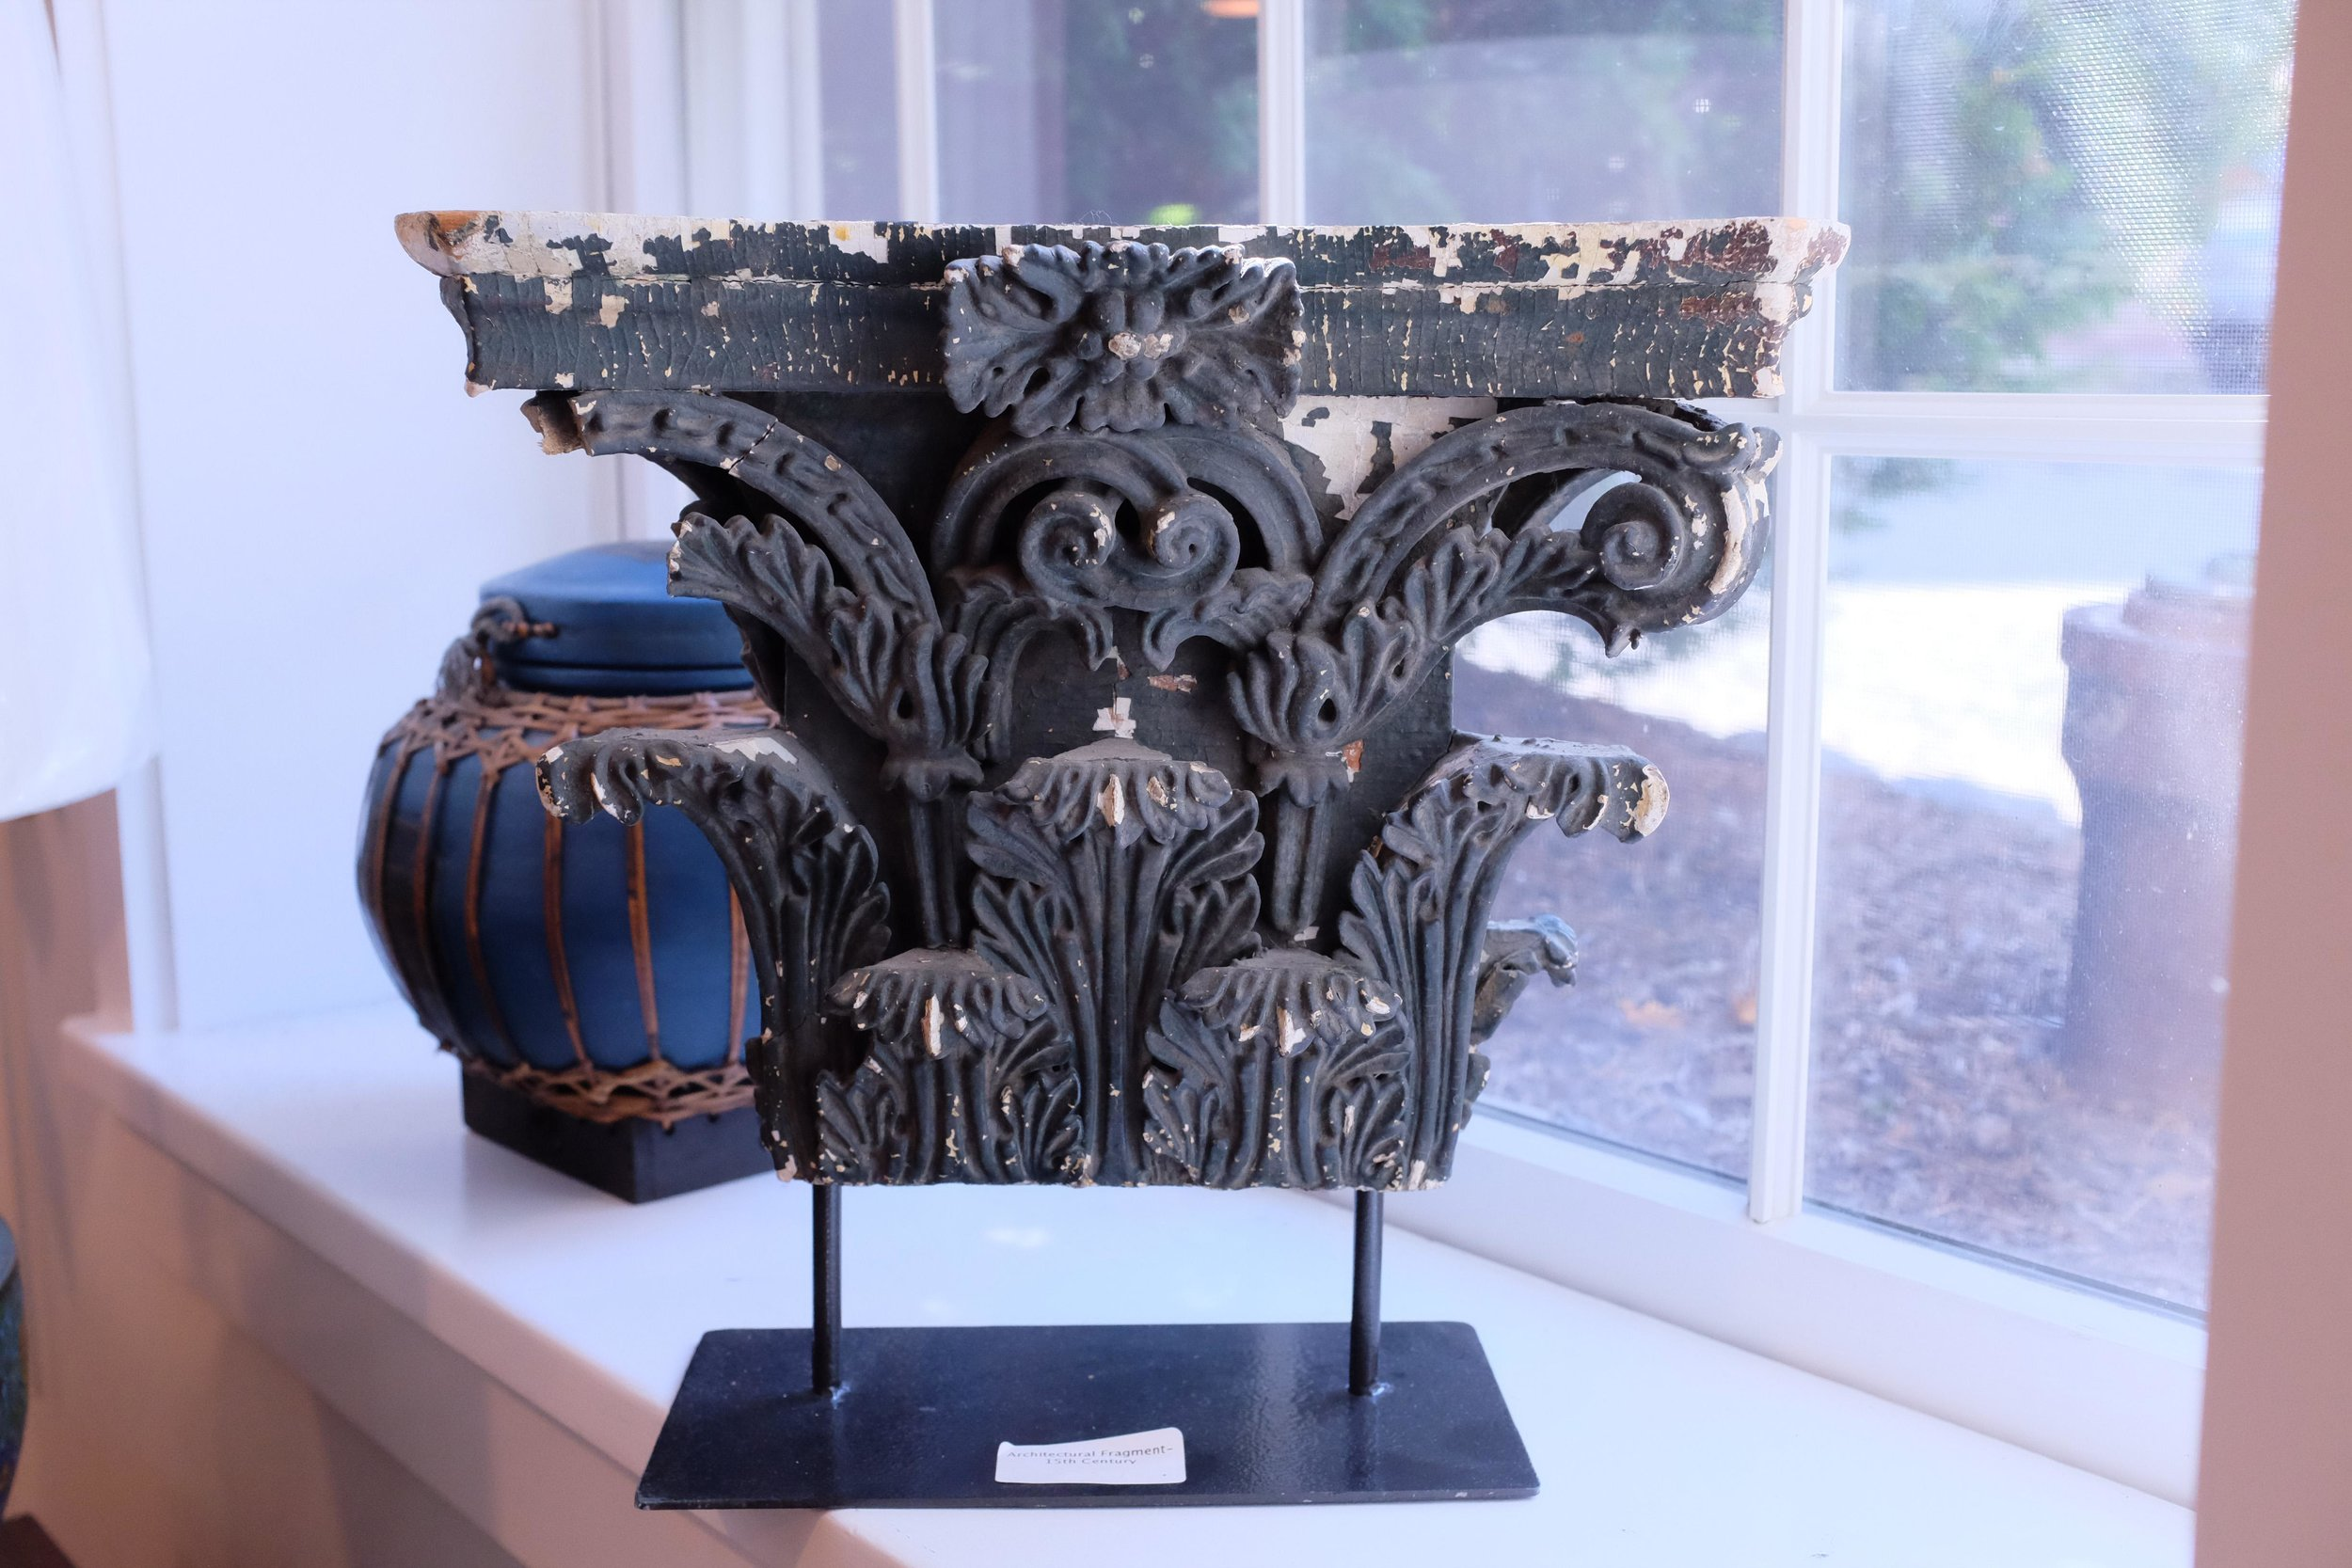 corinthian-style-architectural-fragment-from-15th-century-on-pedestal-2430.jpeg